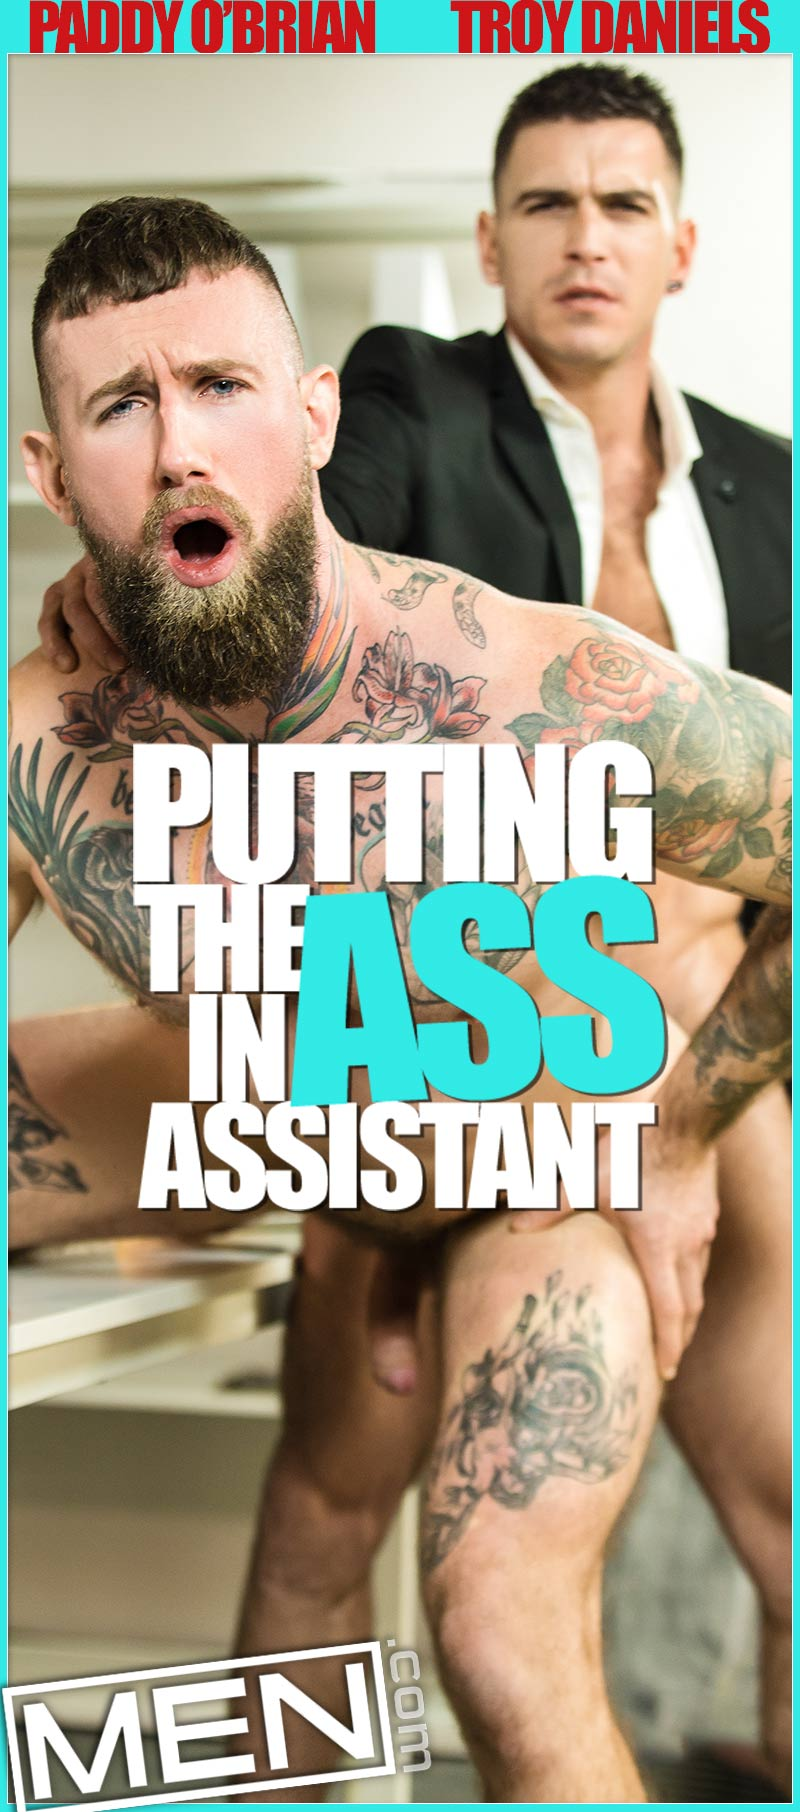 Putting the ASS in Assistant, Part Three (Paddy O'Brian Fucks Troy Daniels) at The Gay Office